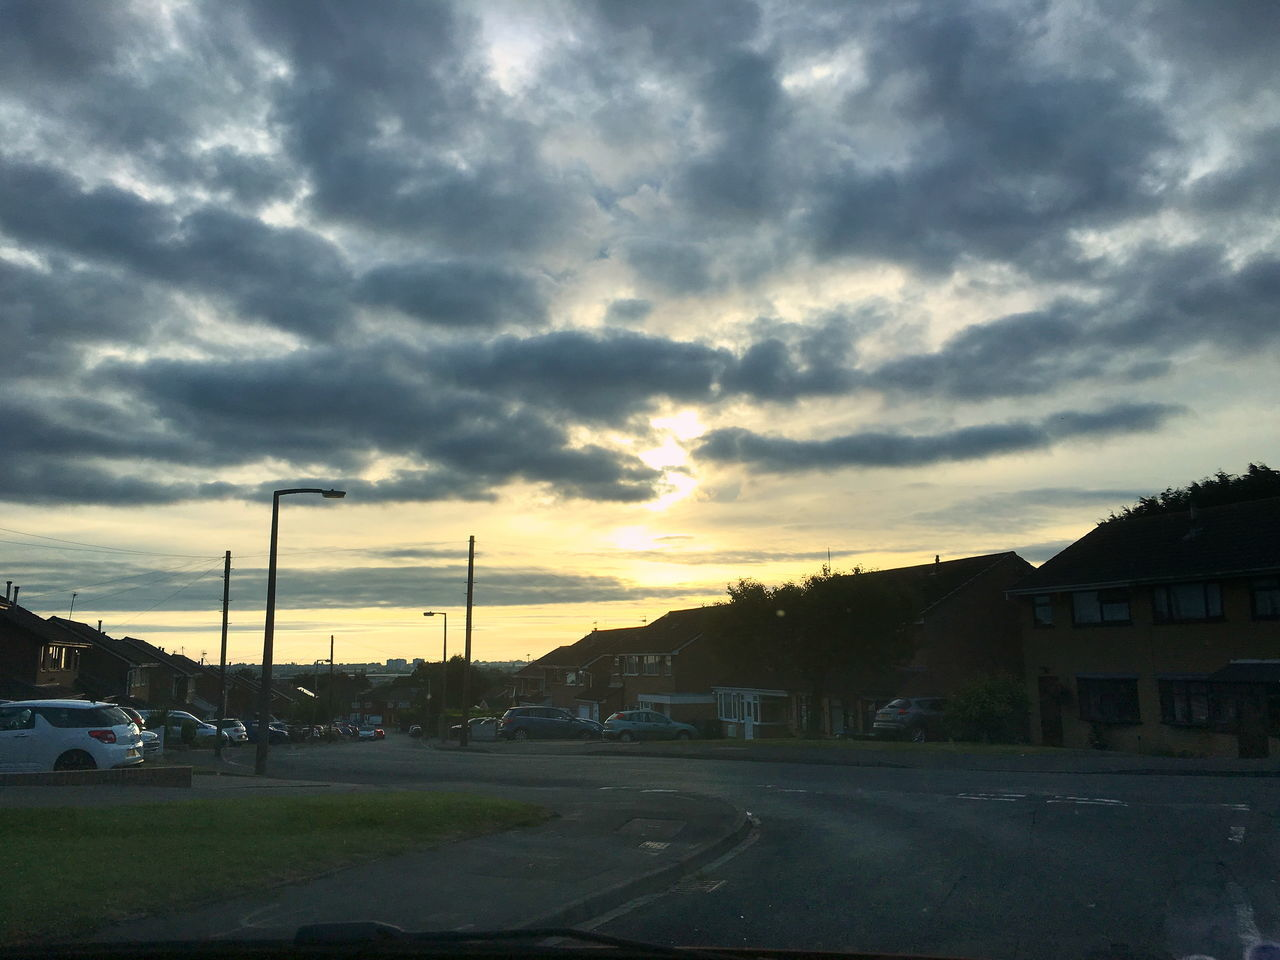 sky, cloud - sky, car, transportation, sunset, dramatic sky, road, land vehicle, built structure, building exterior, street light, no people, mode of transport, architecture, electricity pylon, outdoors, nature, tree, city, day